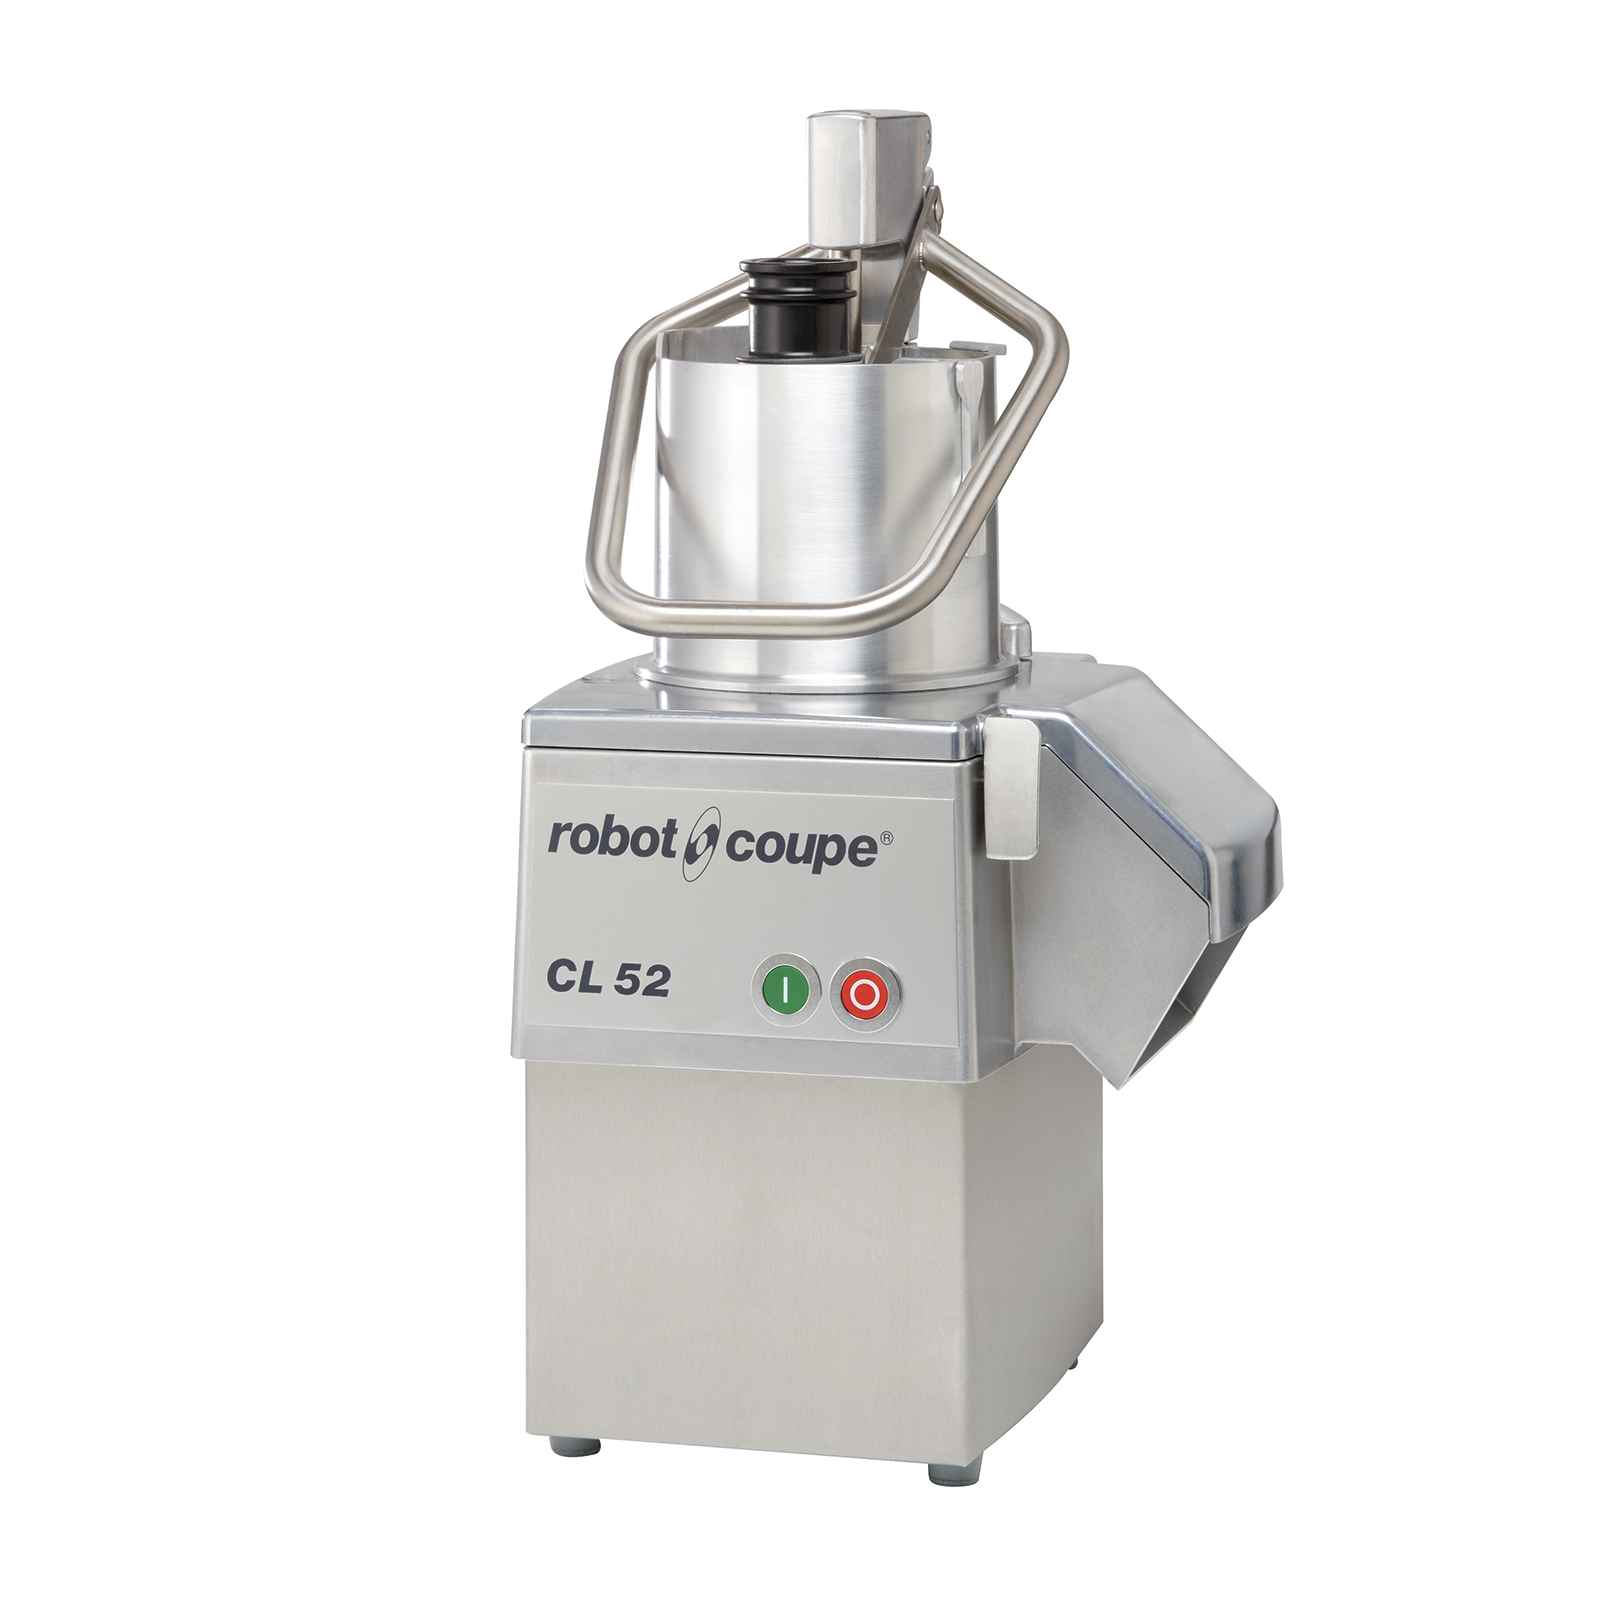 Robot Coupe CL52 food processor, benchtop / countertop